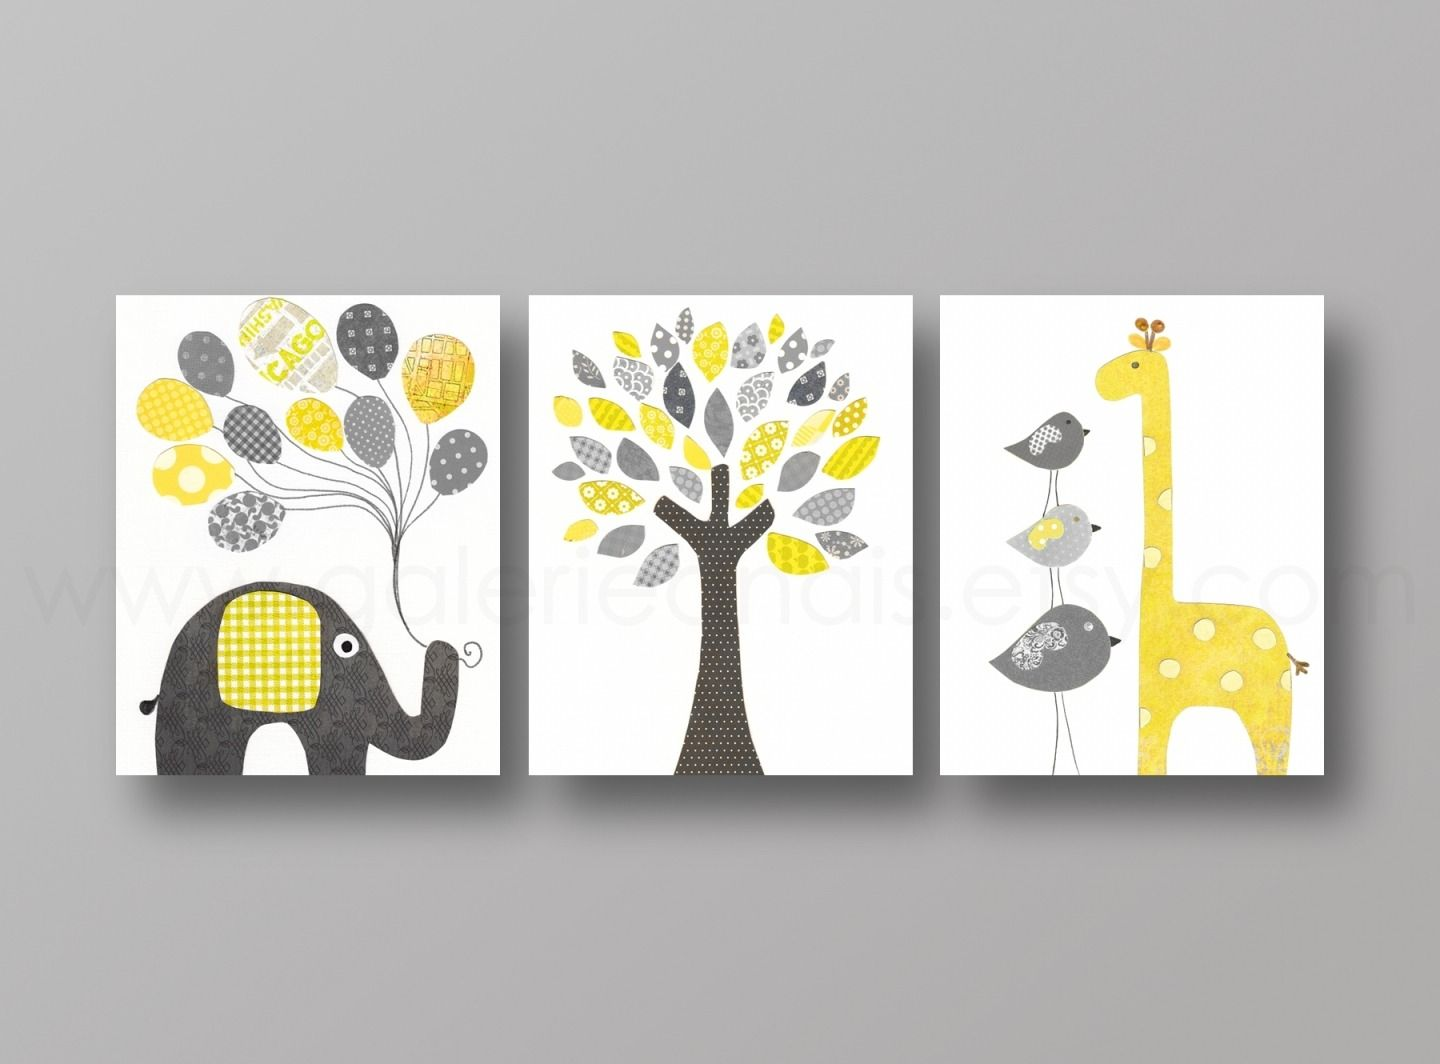 Lot de 3 illustrations pour chambre d 39 enfant et bebe jaune et gris affiche b b et illustrations for Photos chambre enfant